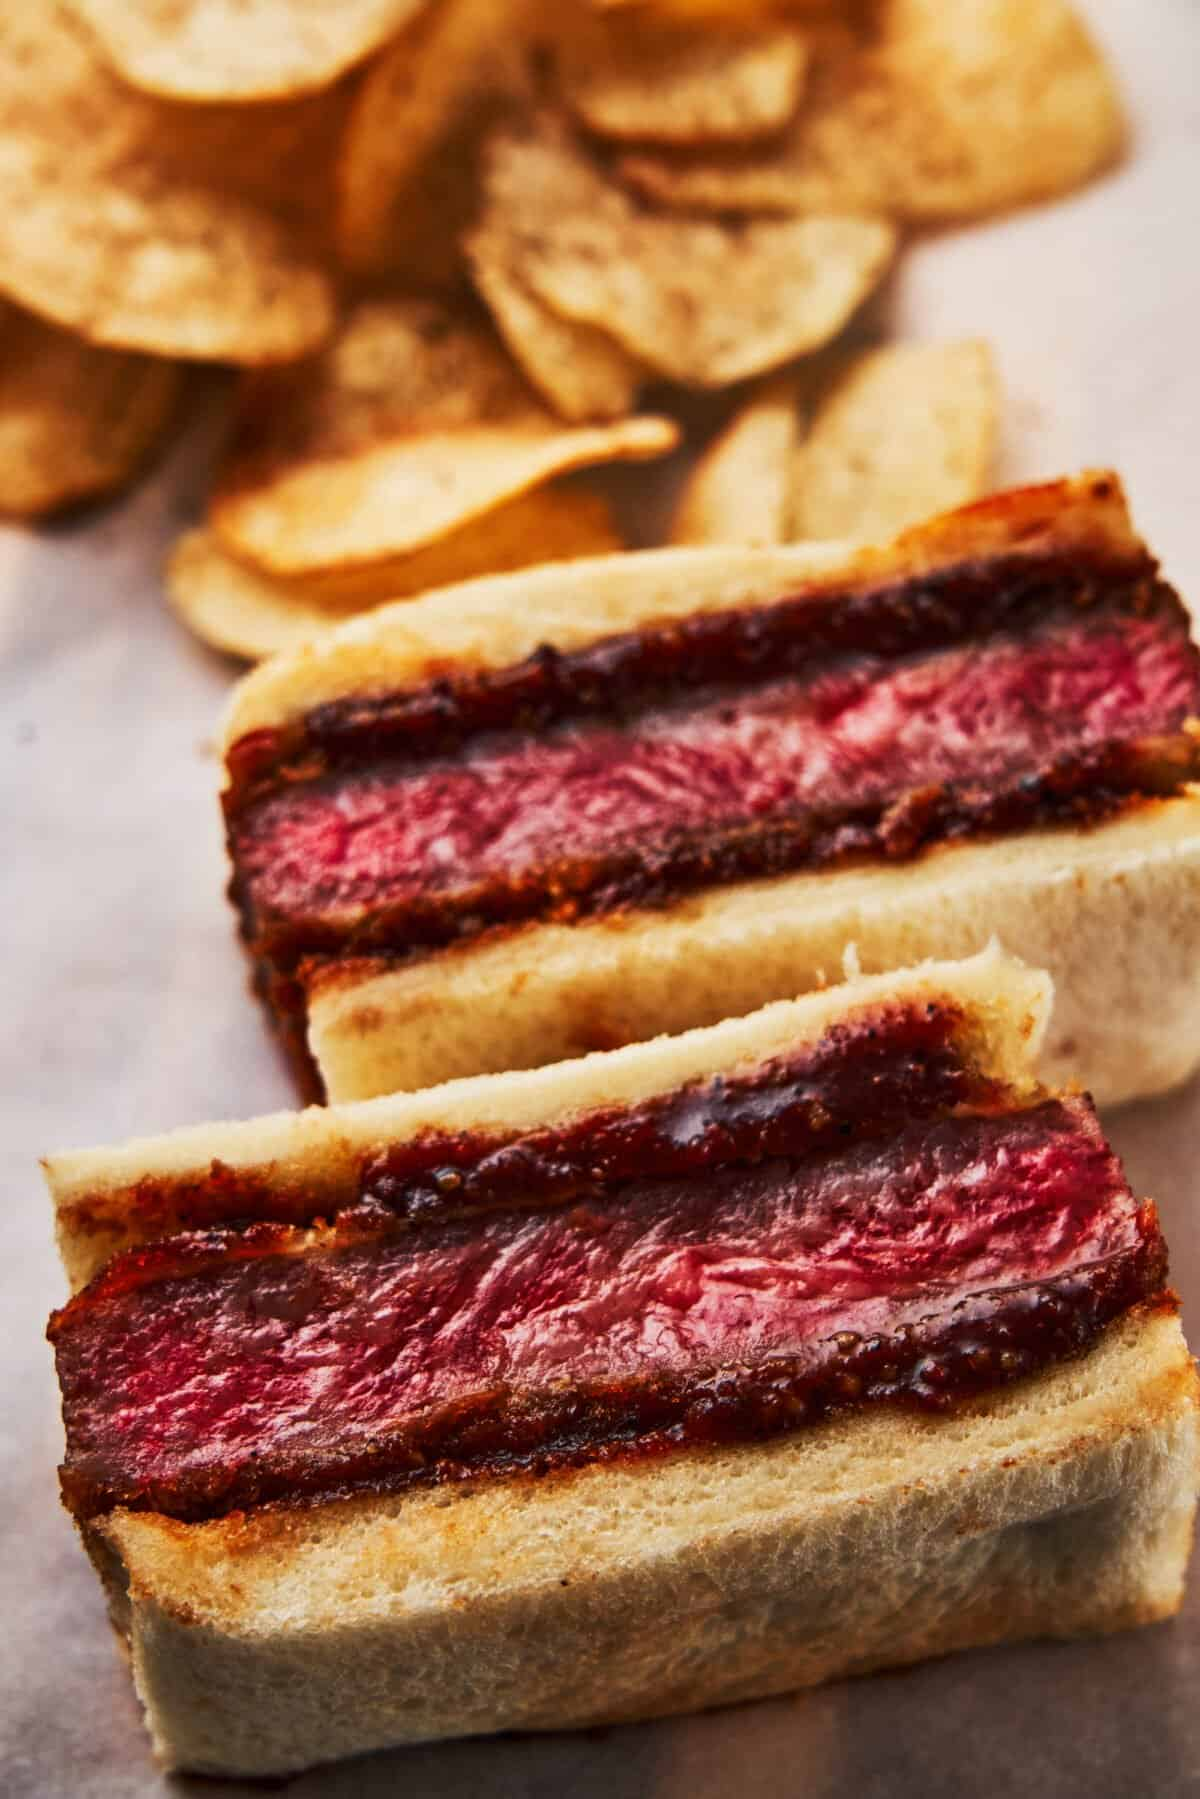 A $200 sandwich in restaurants, this Wagyu Katsu Sandwich is easy to make at home (and costs a lot less). With melt-in-your-mouth beef breaded and fried until crisp, then glazed with a Japanese-style katsu sauce, it's arguably the best sandwich ever!